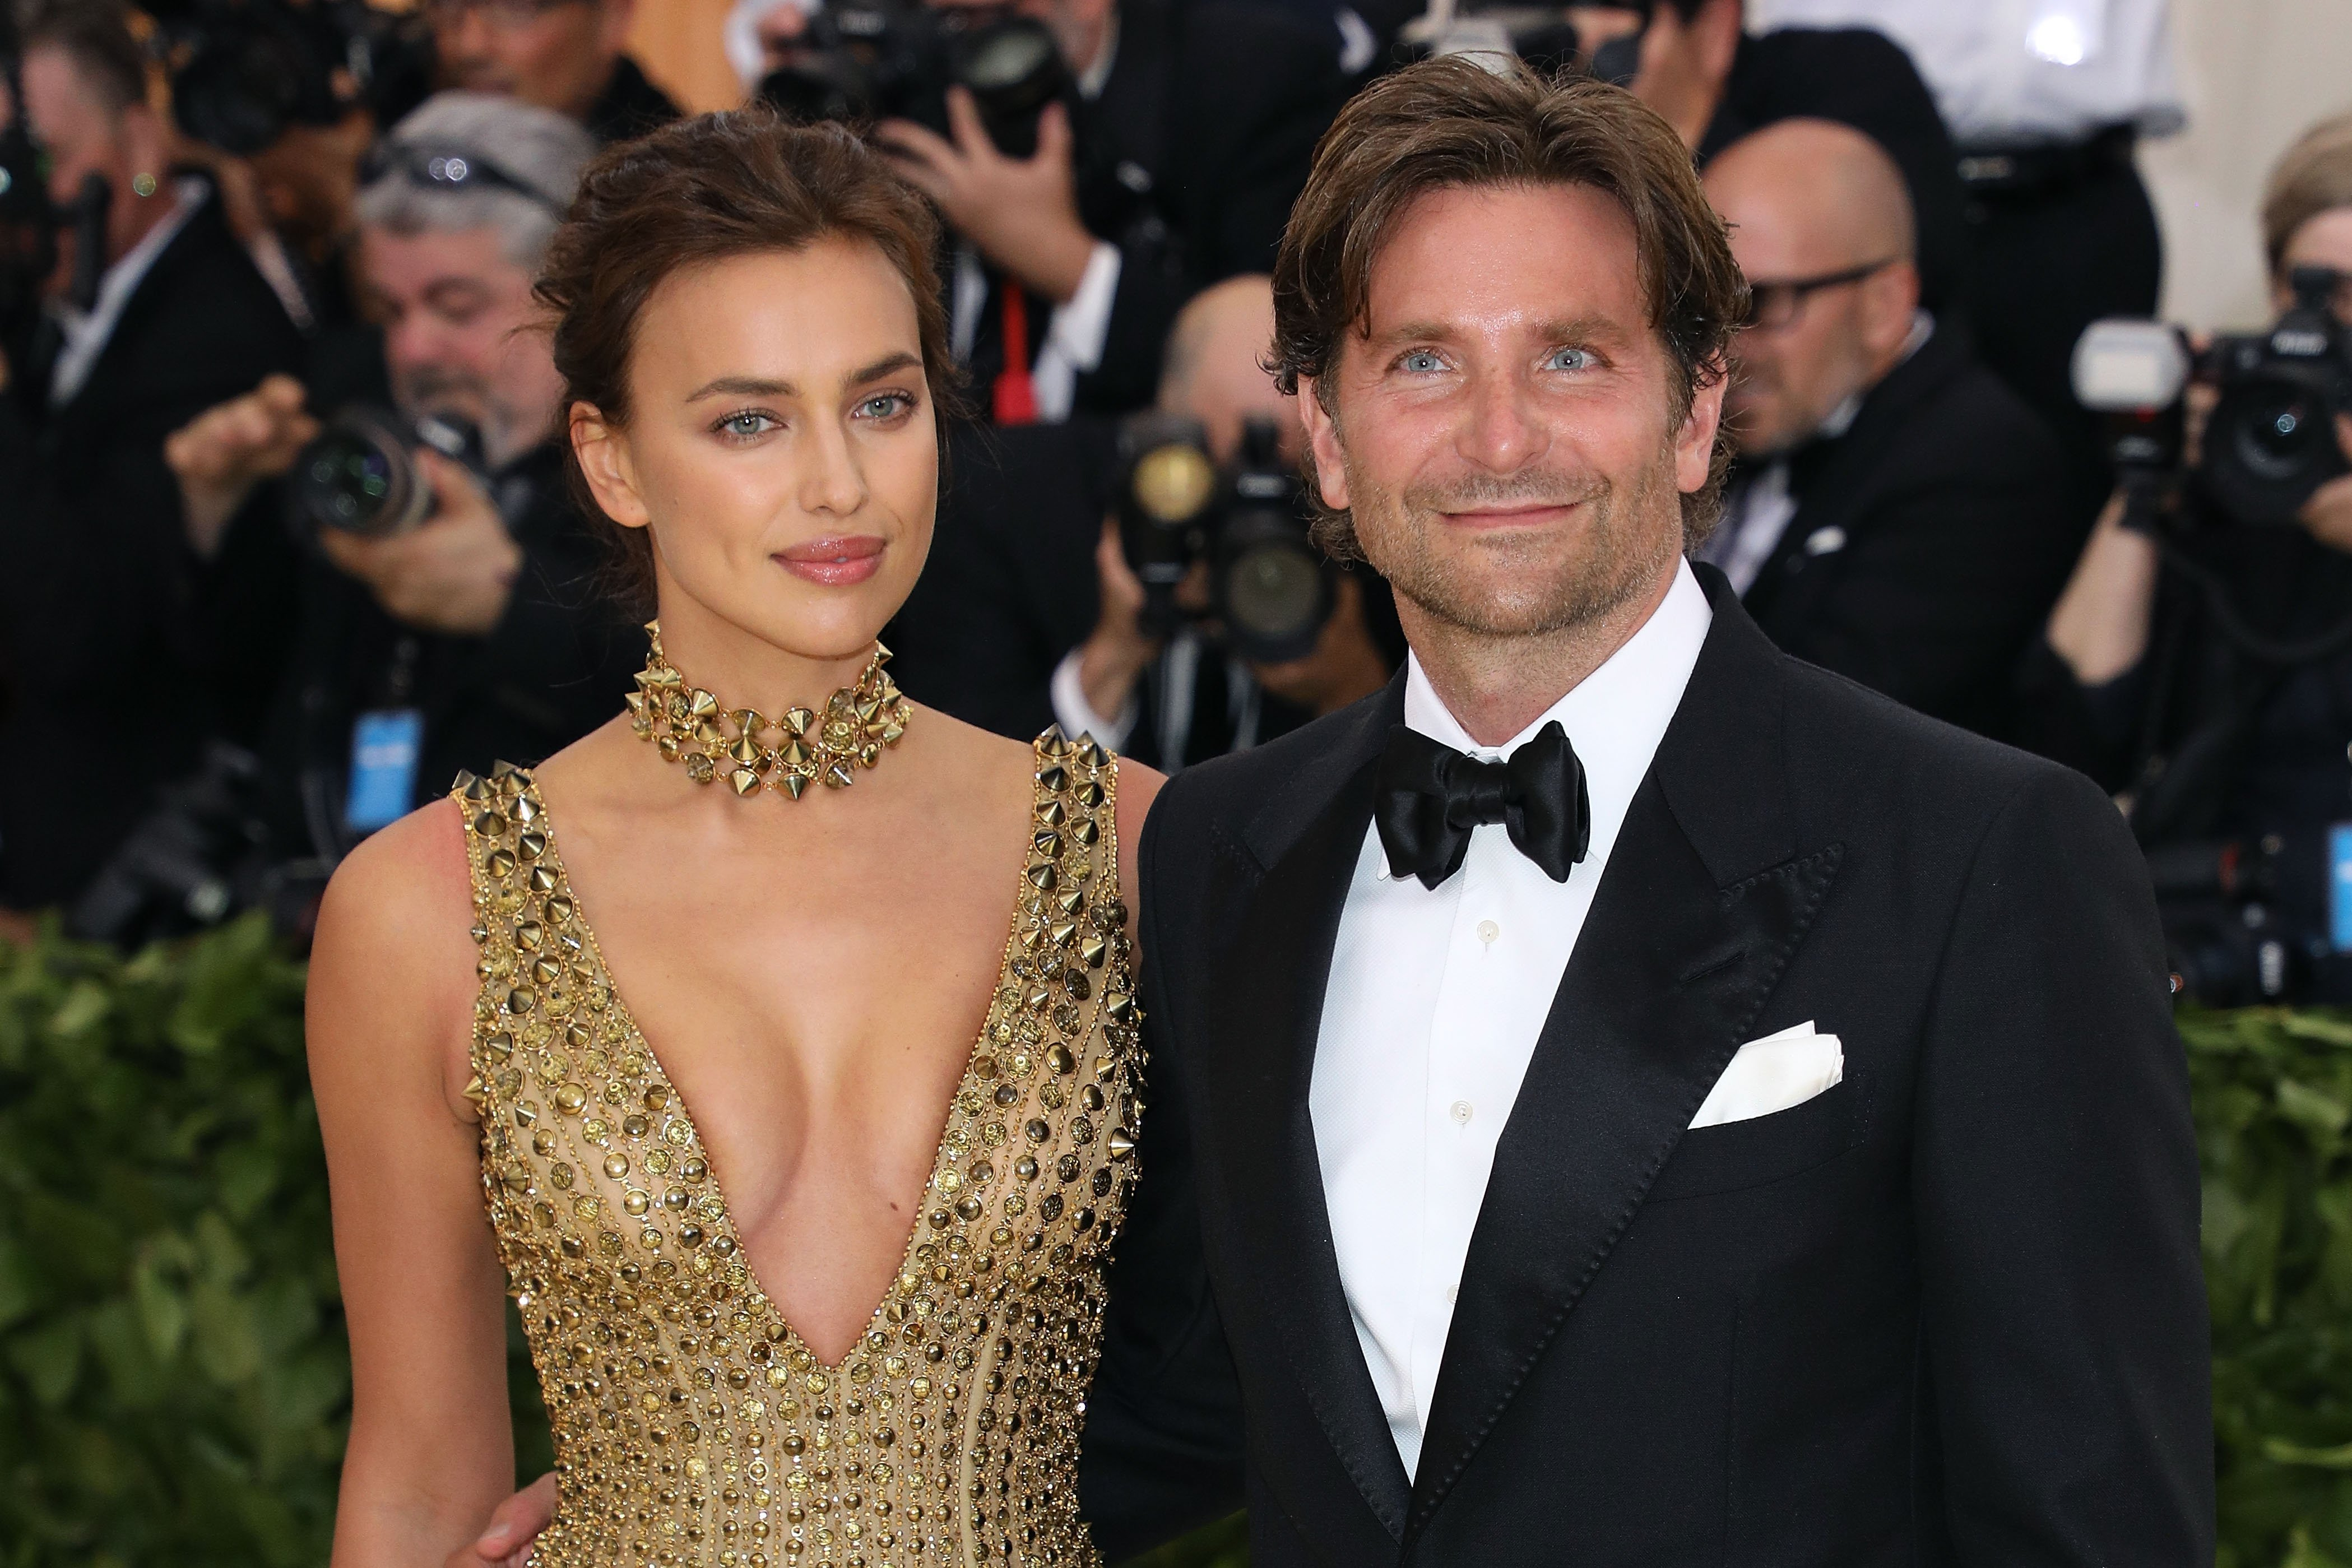 Bradley Cooper and Irina Shayk at Heavenly Bodies Fashion Show | Photo: Getty Images